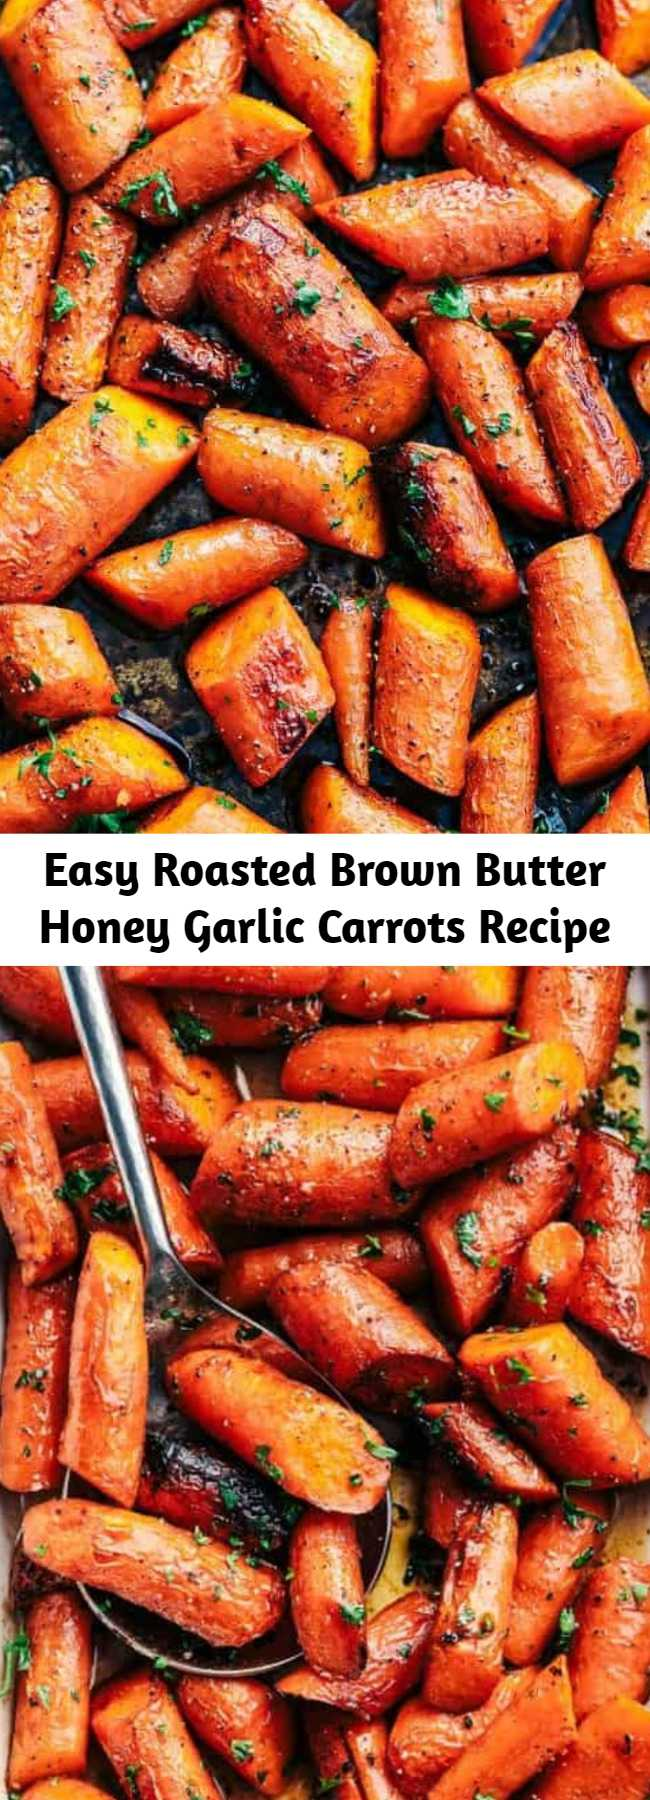 Easy Roasted Brown Butter Honey Garlic Carrots Recipe - Roasted Brown Butter Honey Garlic Carrots make an excellent side dish. Roasted to tender perfection in the most incredible brown butter honey garlic sauce these will become a new favorite!